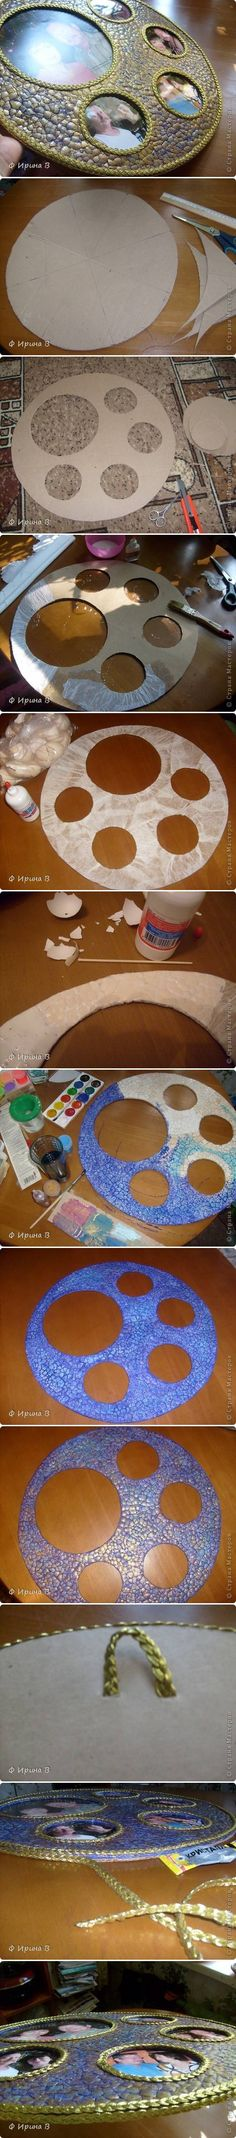 DIY Eggshell Panorama Frame DIY Projects | UsefulDIY.com Follow Us on Facebook == http://www.facebook.com/UsefulDiy